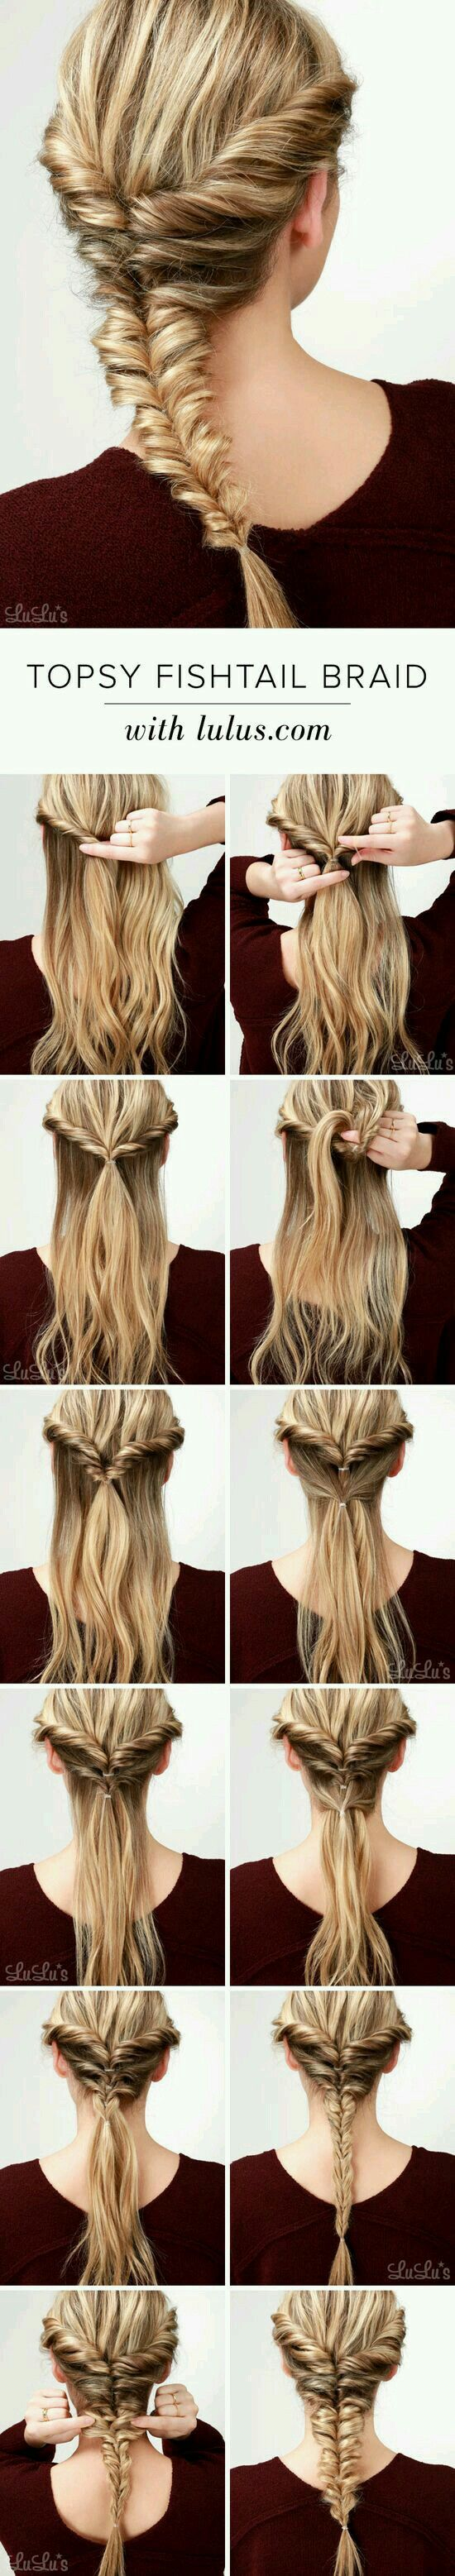 30 Amazing Braided Hairstyles For Medium & Long Hair.